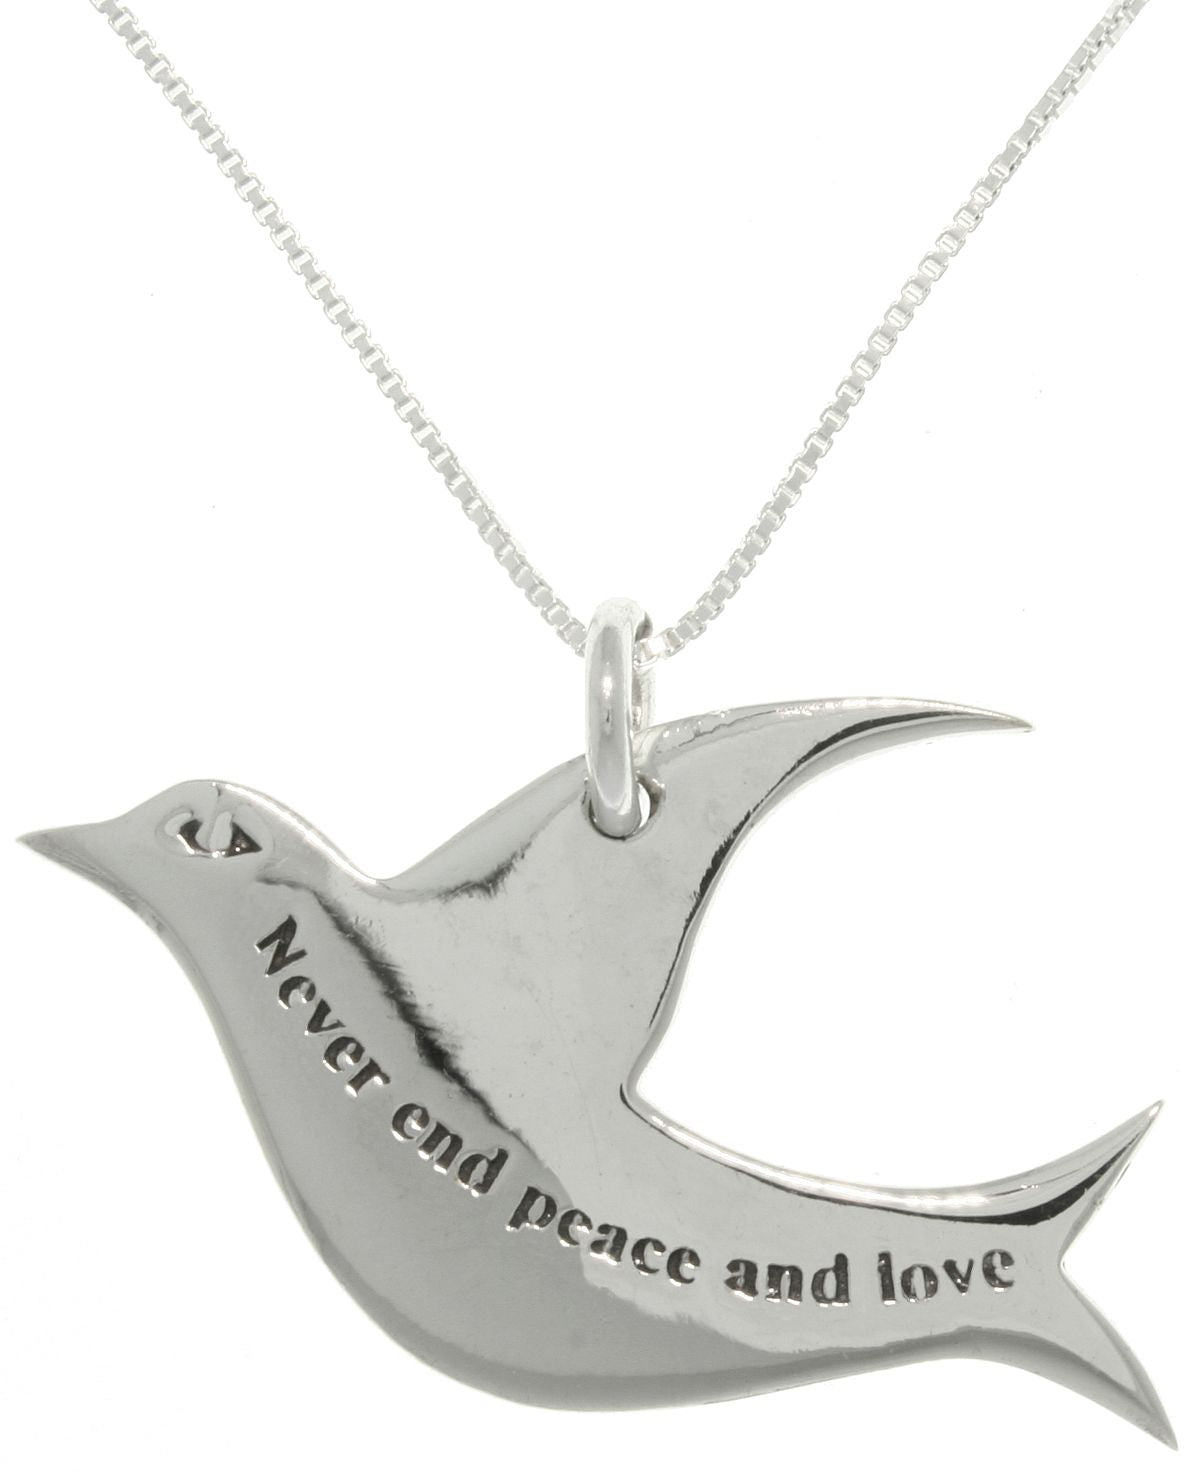 Jewelry trends sterling silver never end peace and love dove jewelry trends sterling silver never end peace and love dove pendant with 18 inch chain necklace aloadofball Choice Image